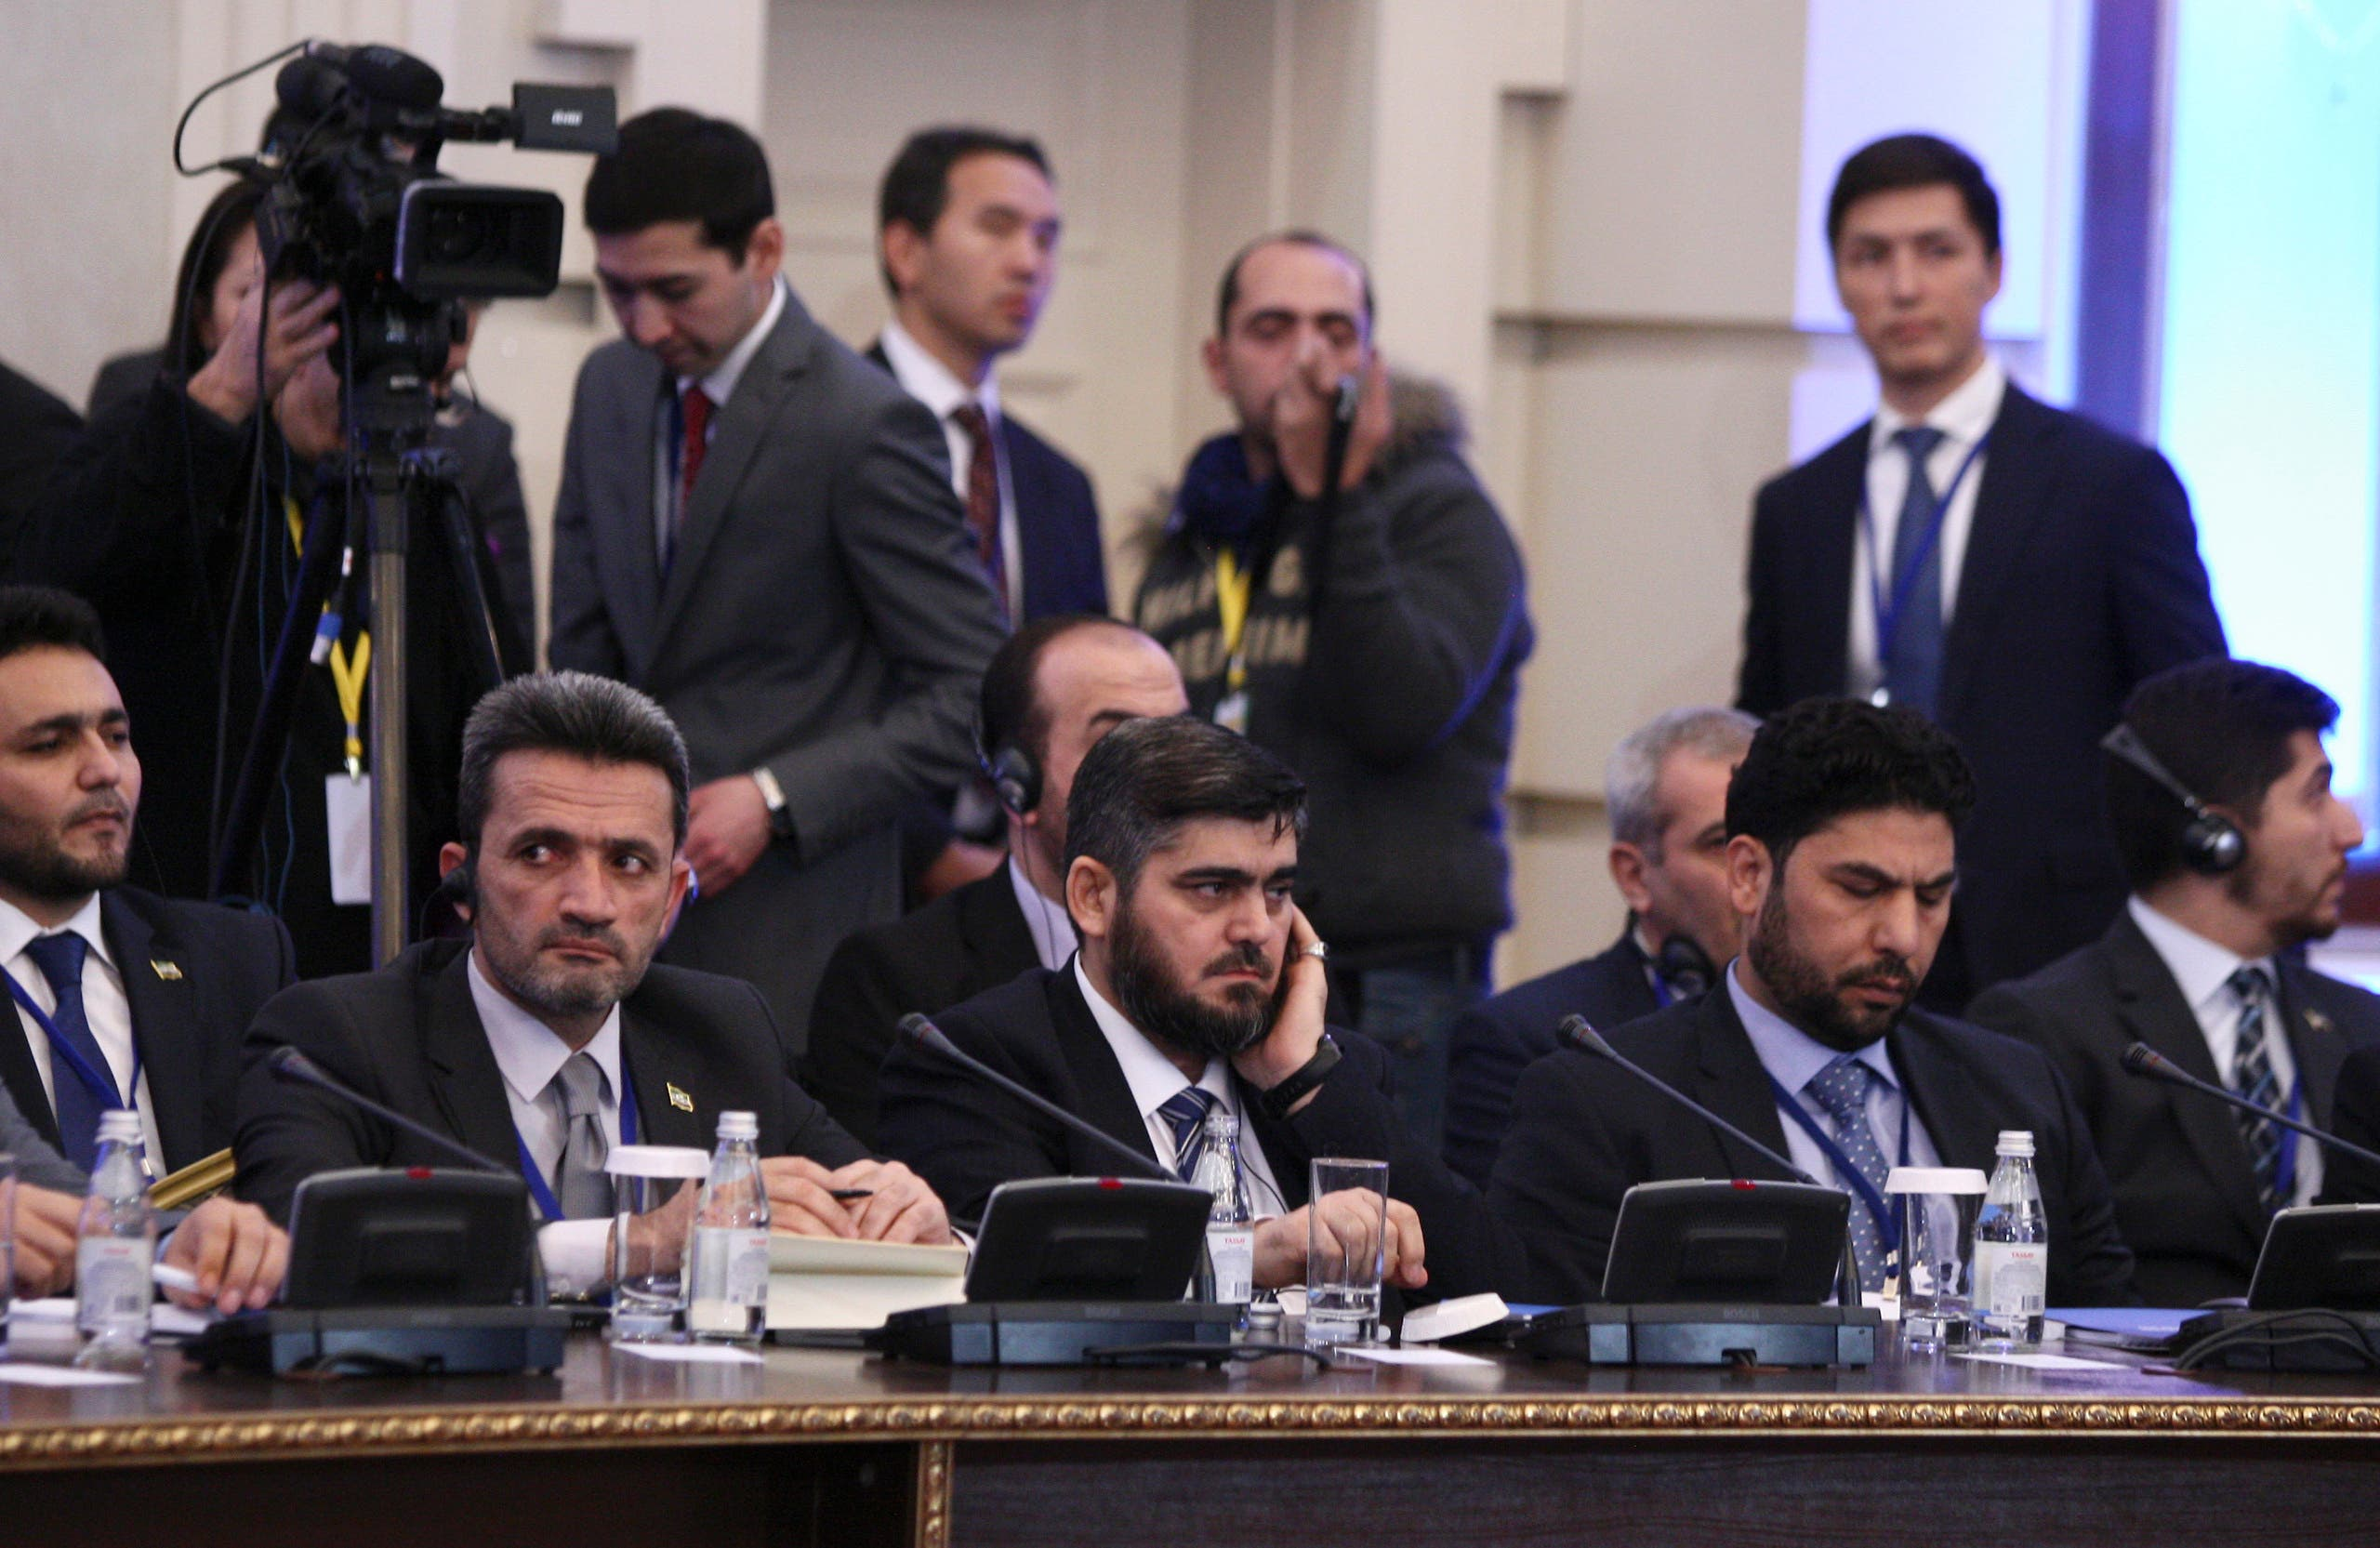 Mohammad Alloush (C), the head of the Syrian opposition delegation, attends Syria peace talks in Astana, Kazakhstan January 23, 2017. REUTERS/Mukhtar Kholdorbekov